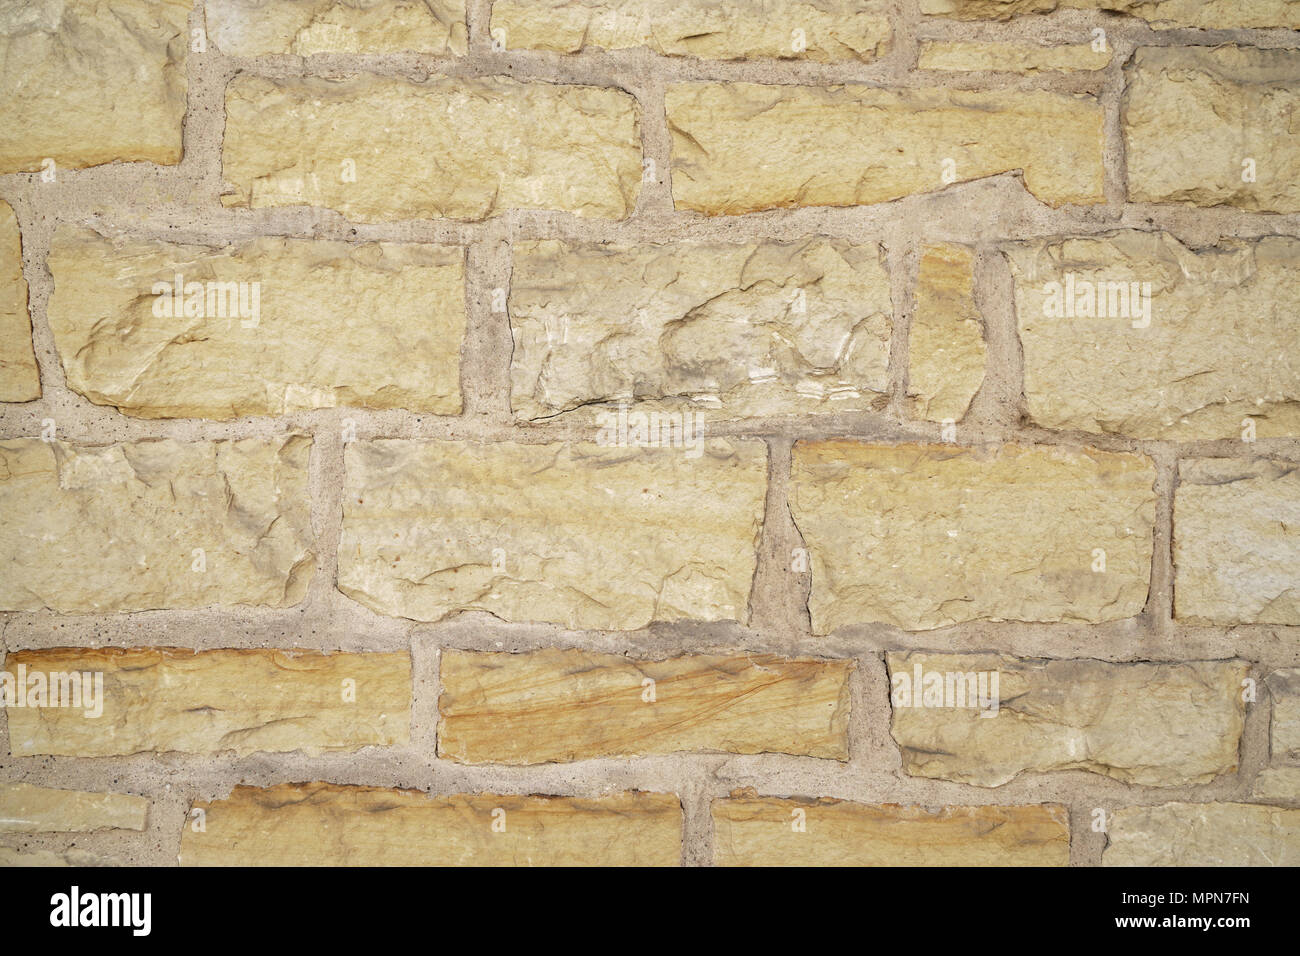 natural stone wall masonry background texture pattern - Stock Image